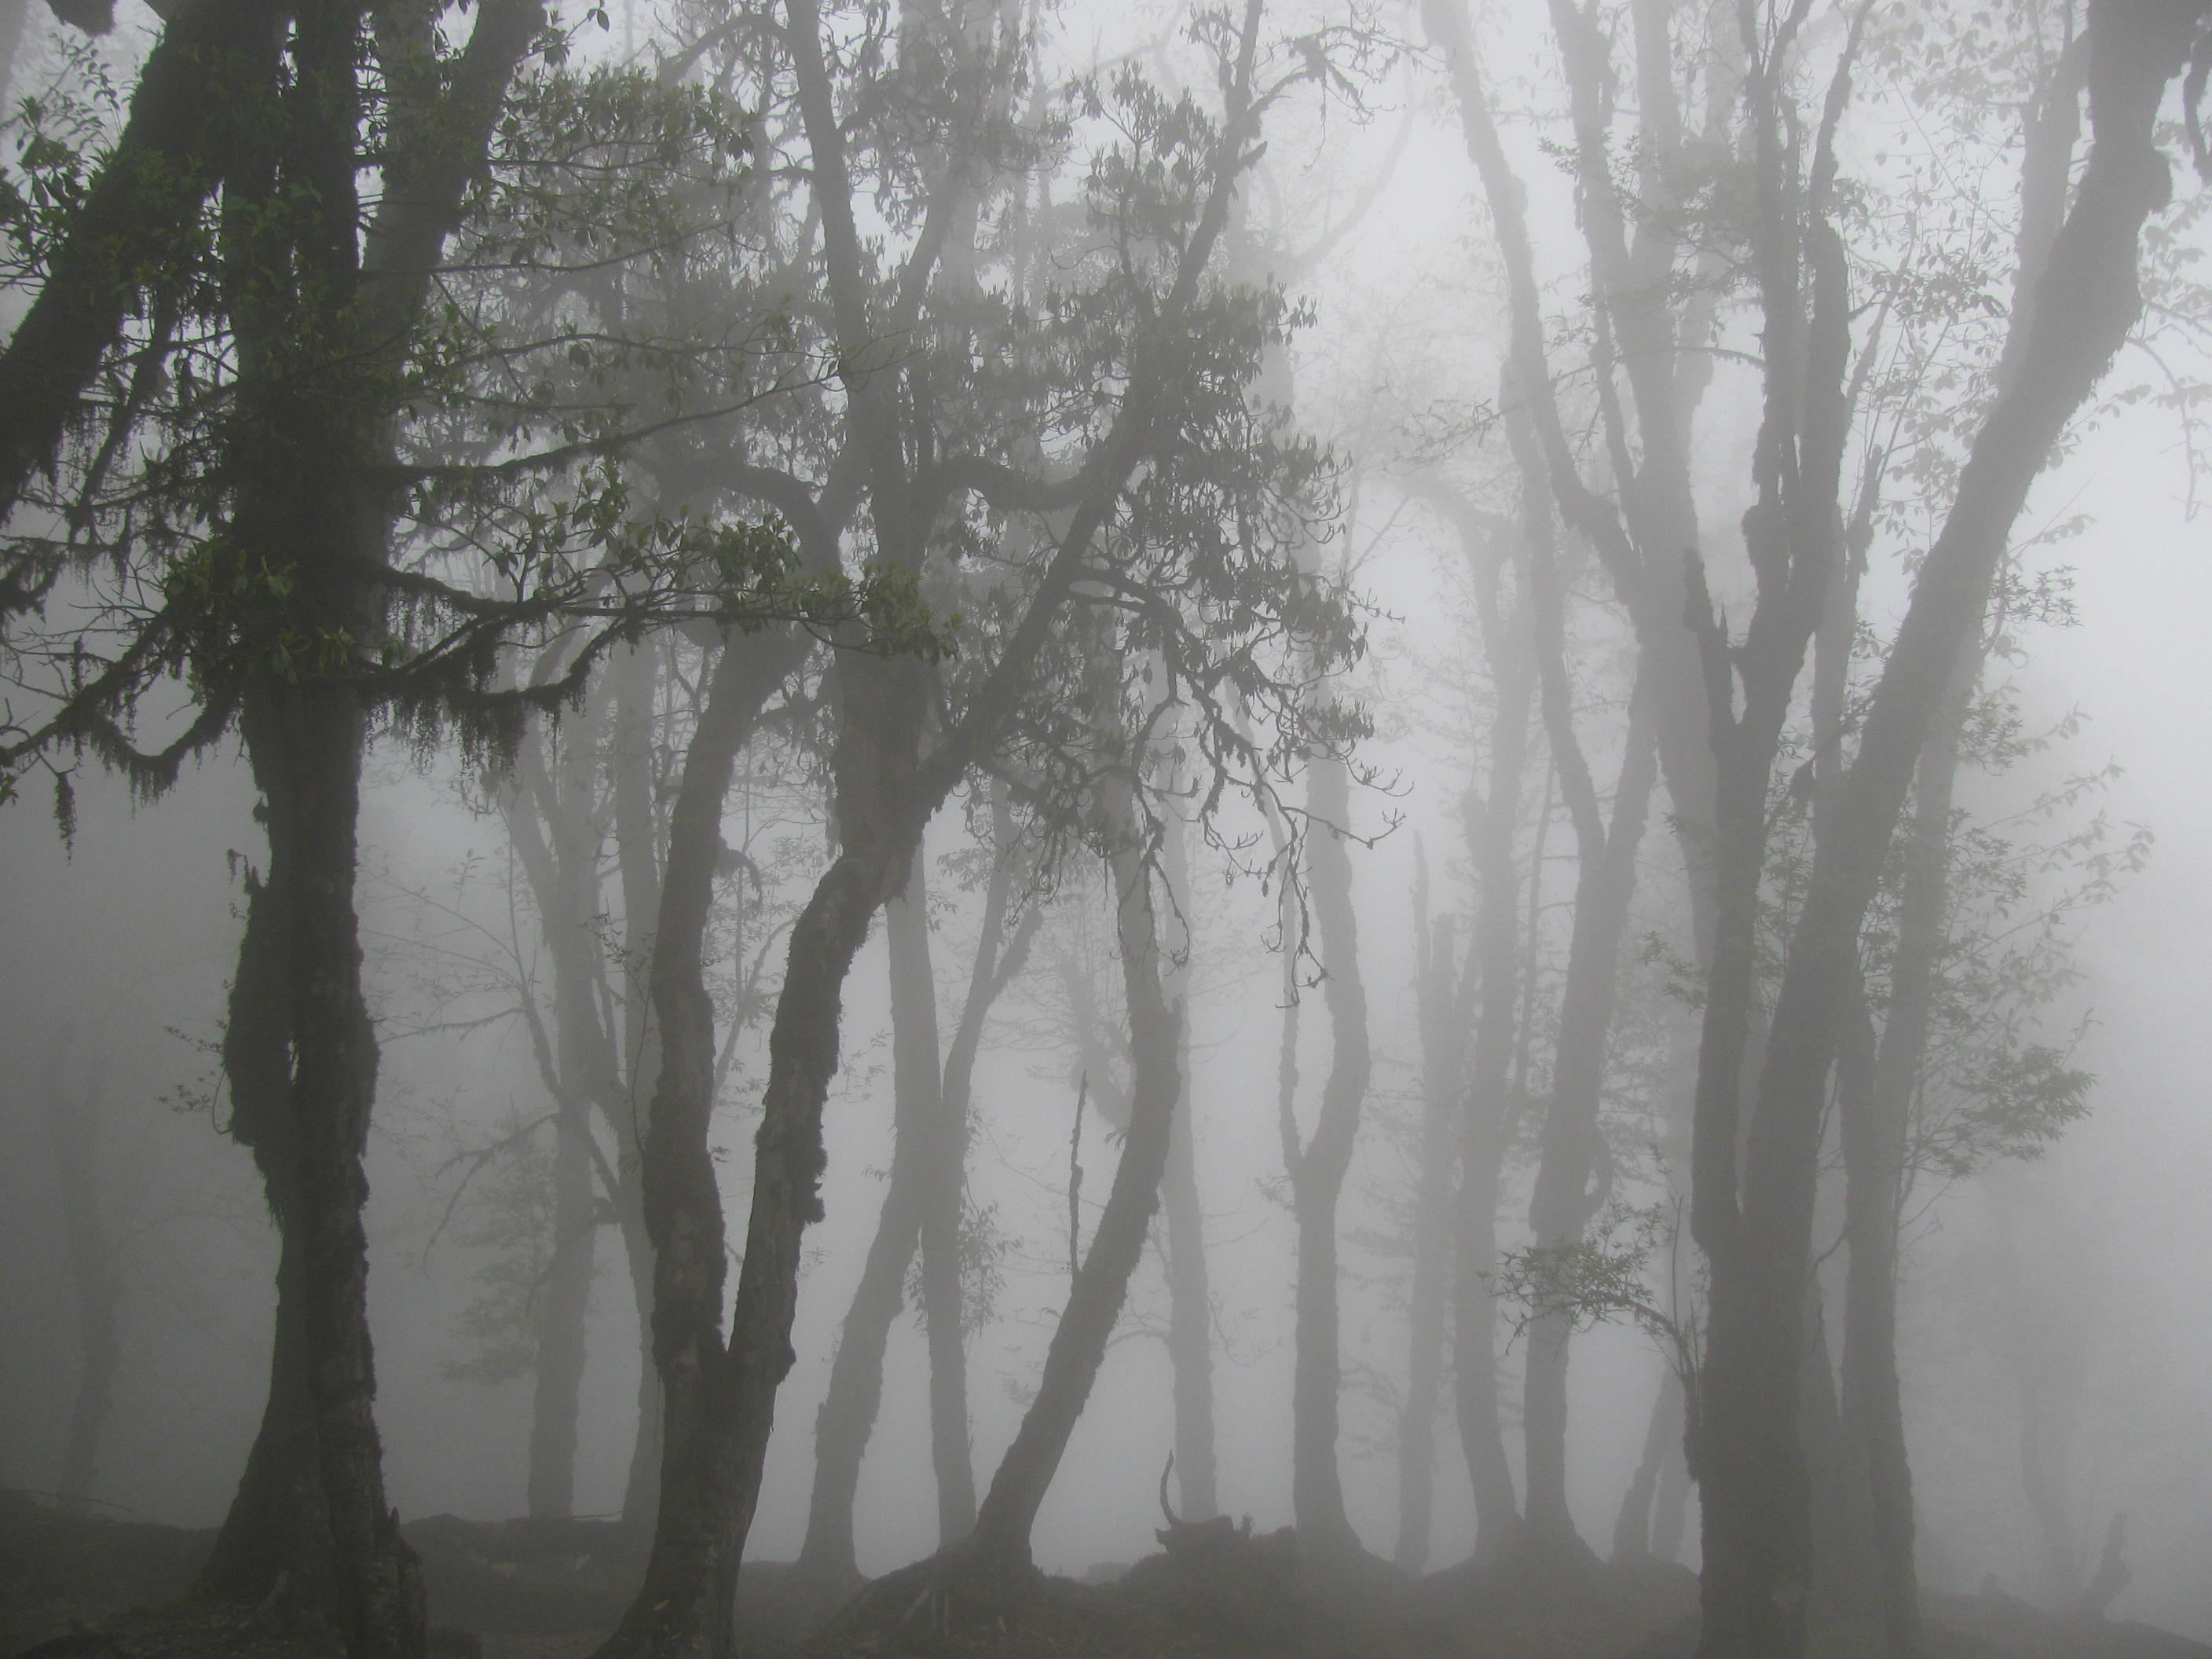 Heavy Fog in the Forest